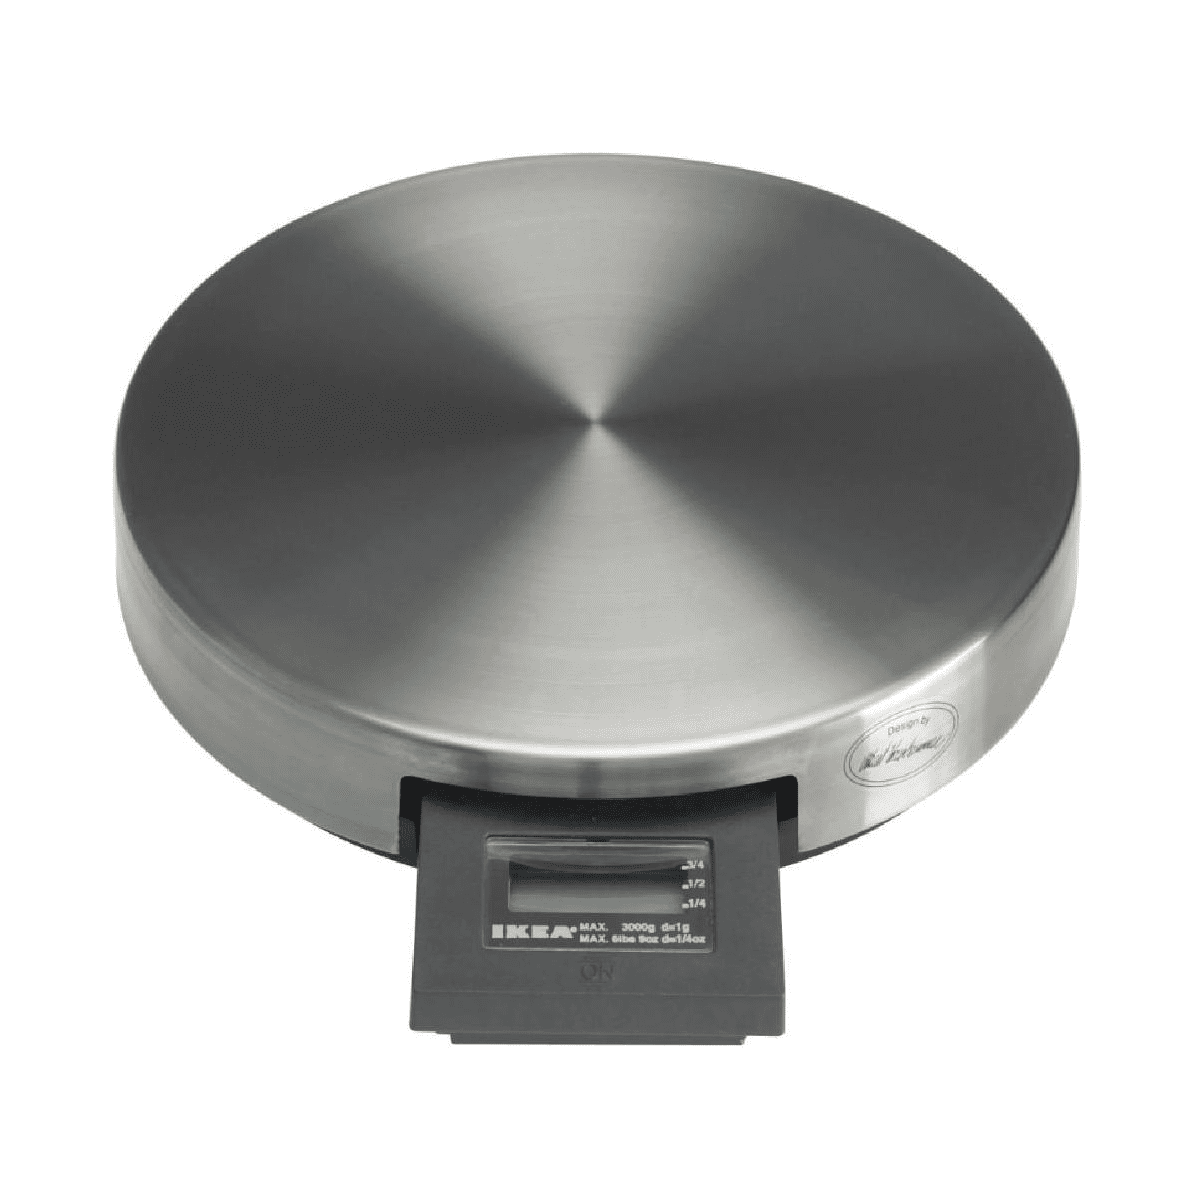 Ordning Scales Stainless Steel